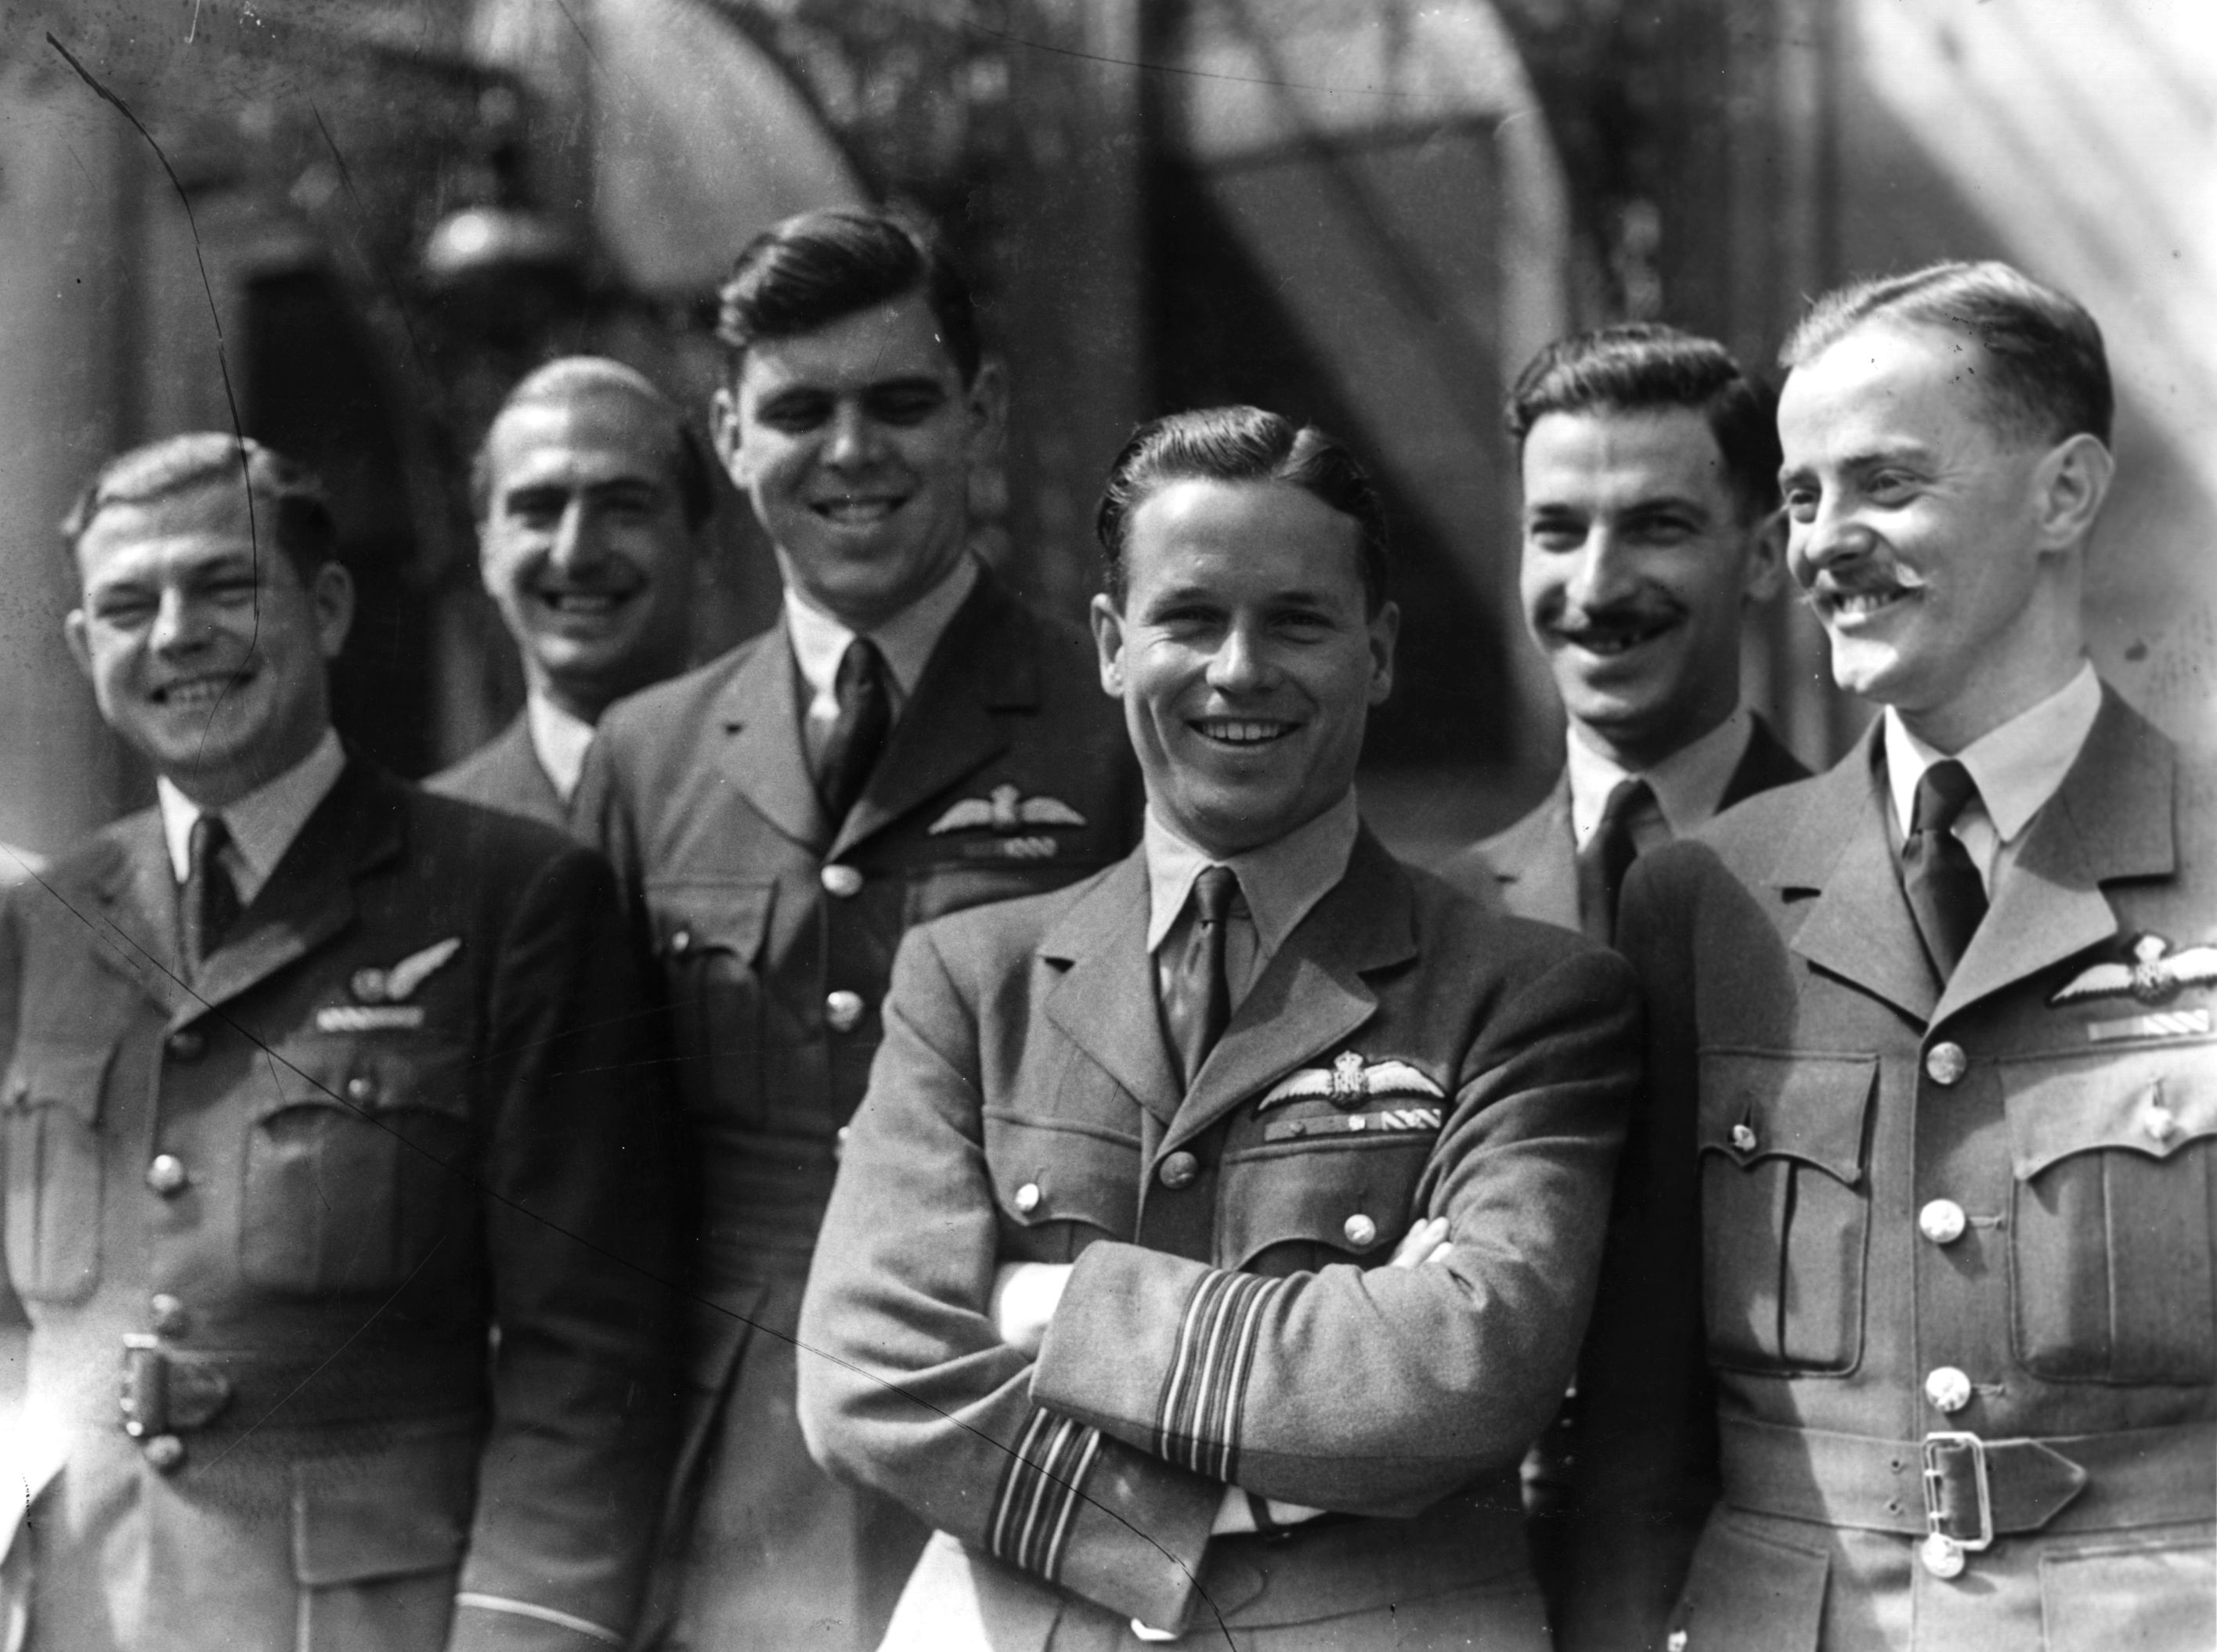 Guy Gibson (centre) with members of his squadron. (Photo by Keystone/Getty Images)